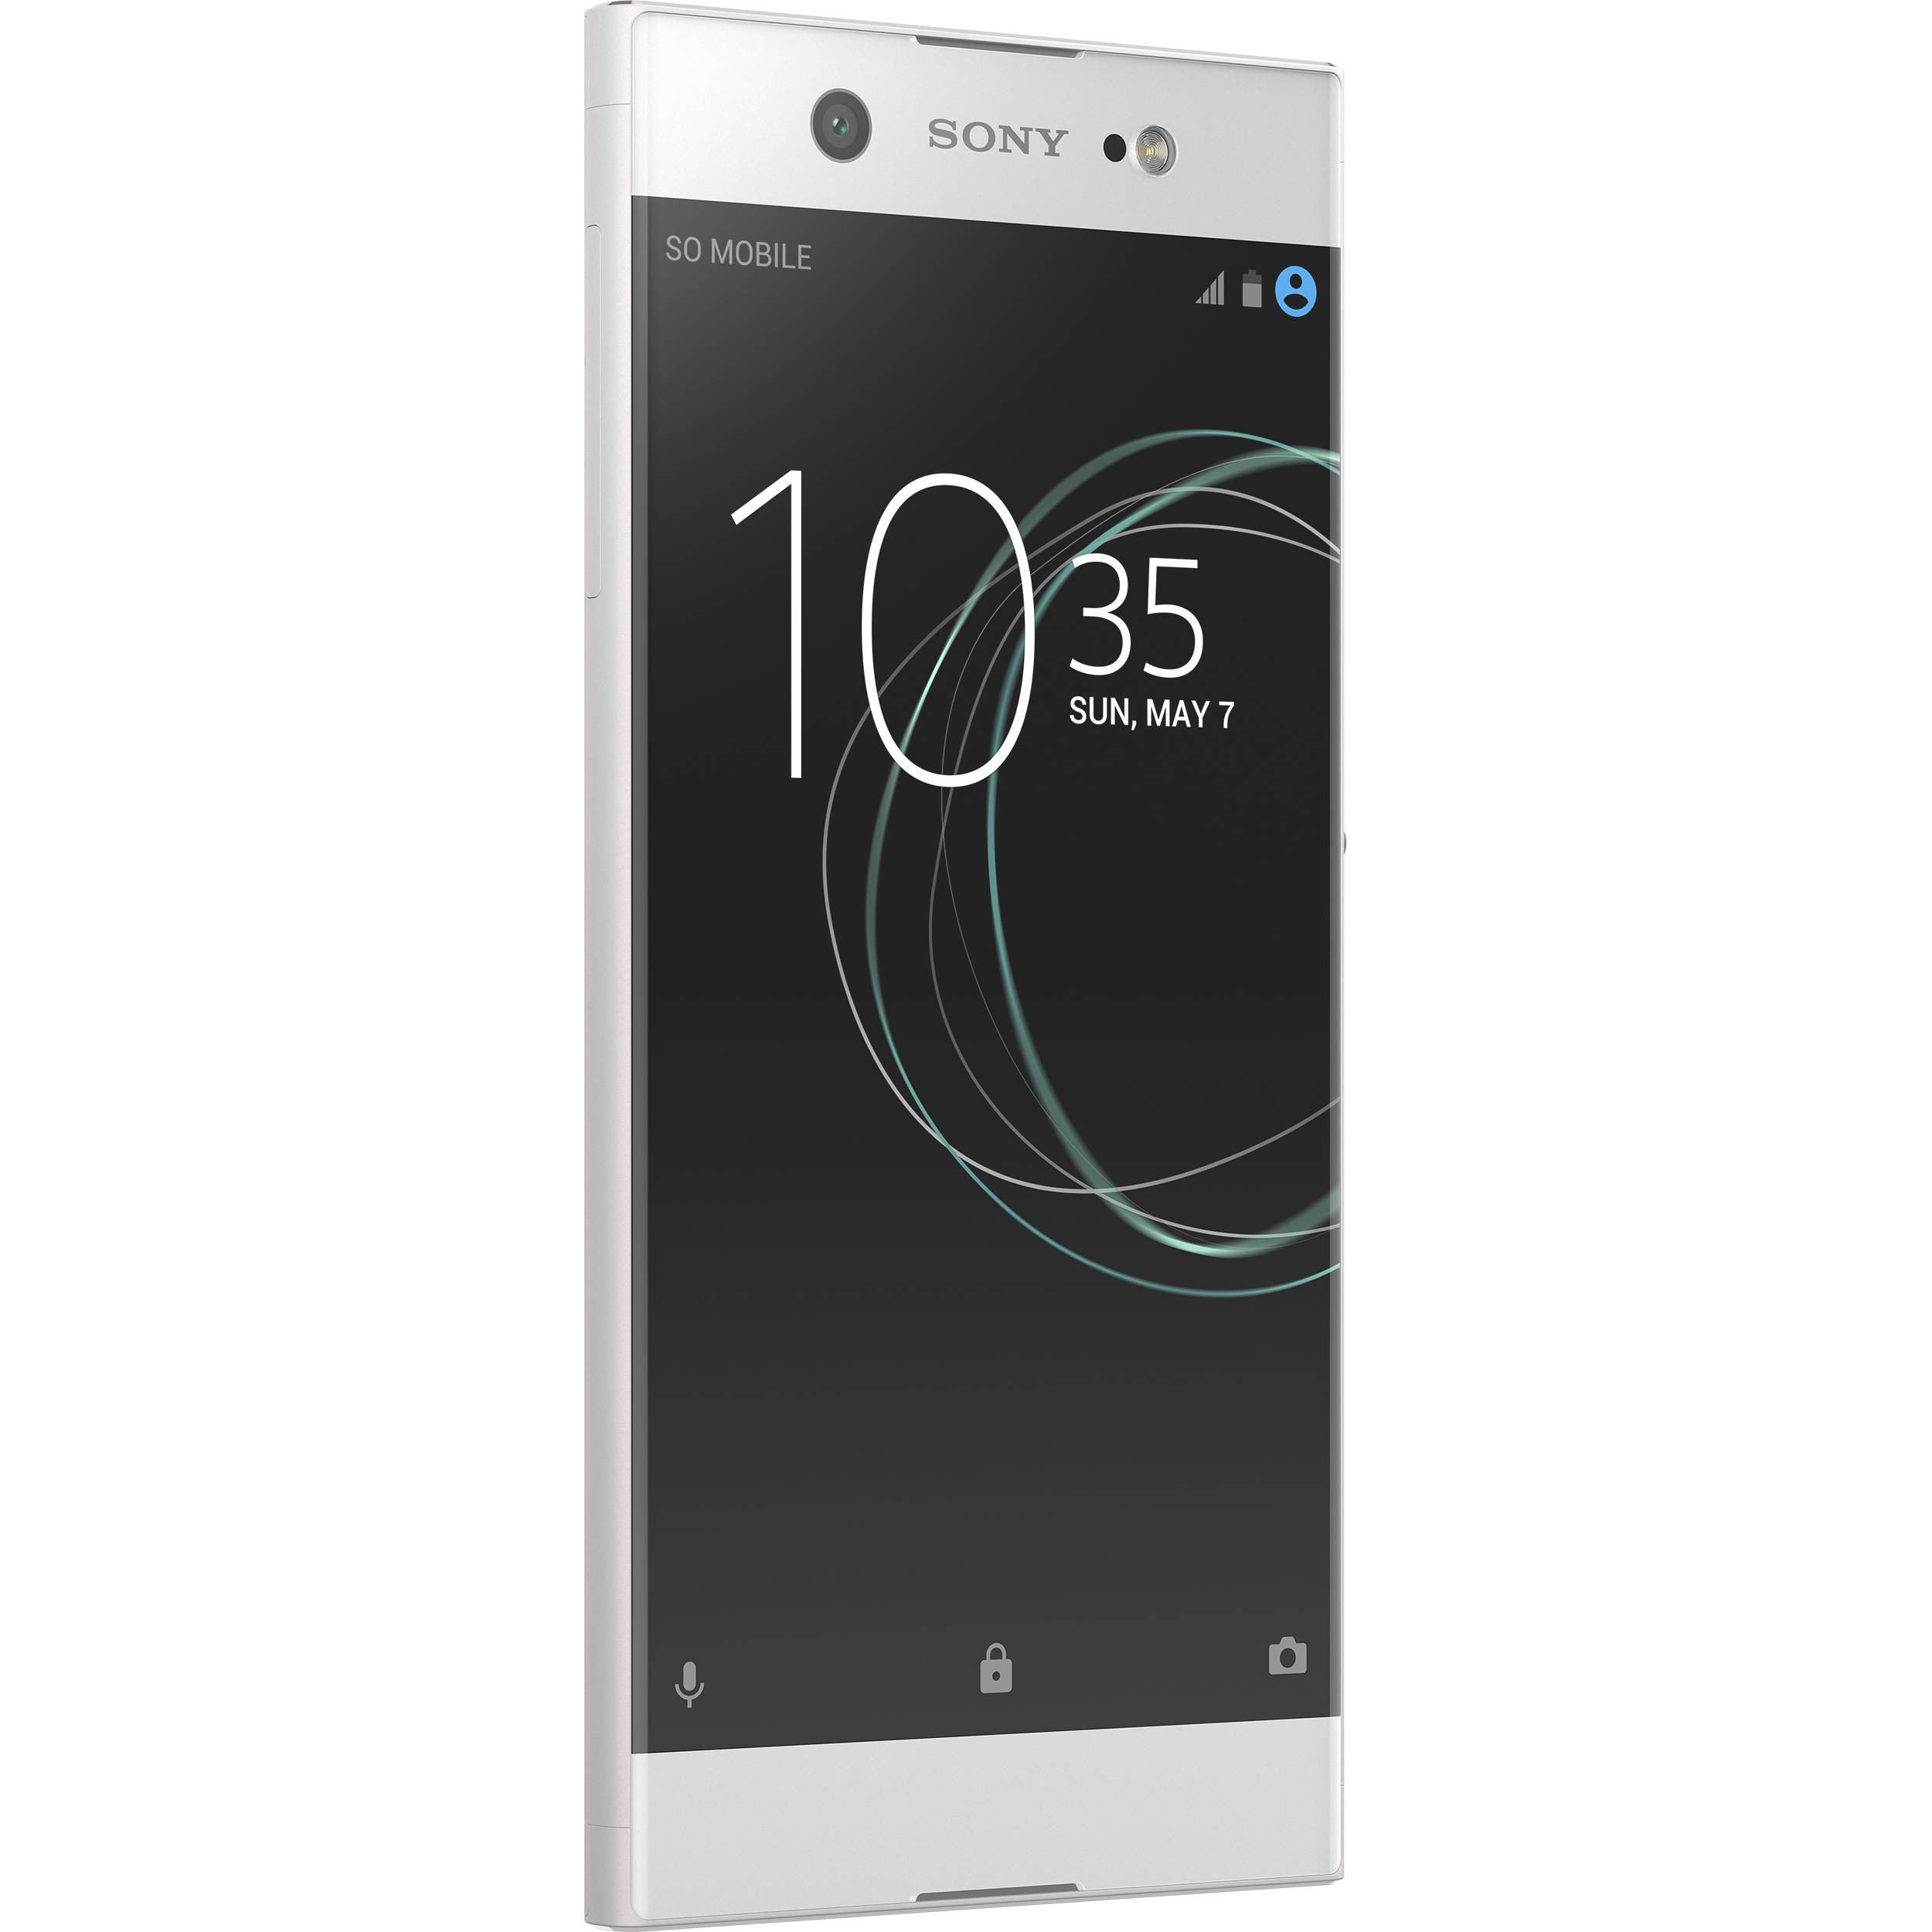 sony xperia xa1 ultra g3223 32gb smartphone 1308 4111 b h photo. Black Bedroom Furniture Sets. Home Design Ideas